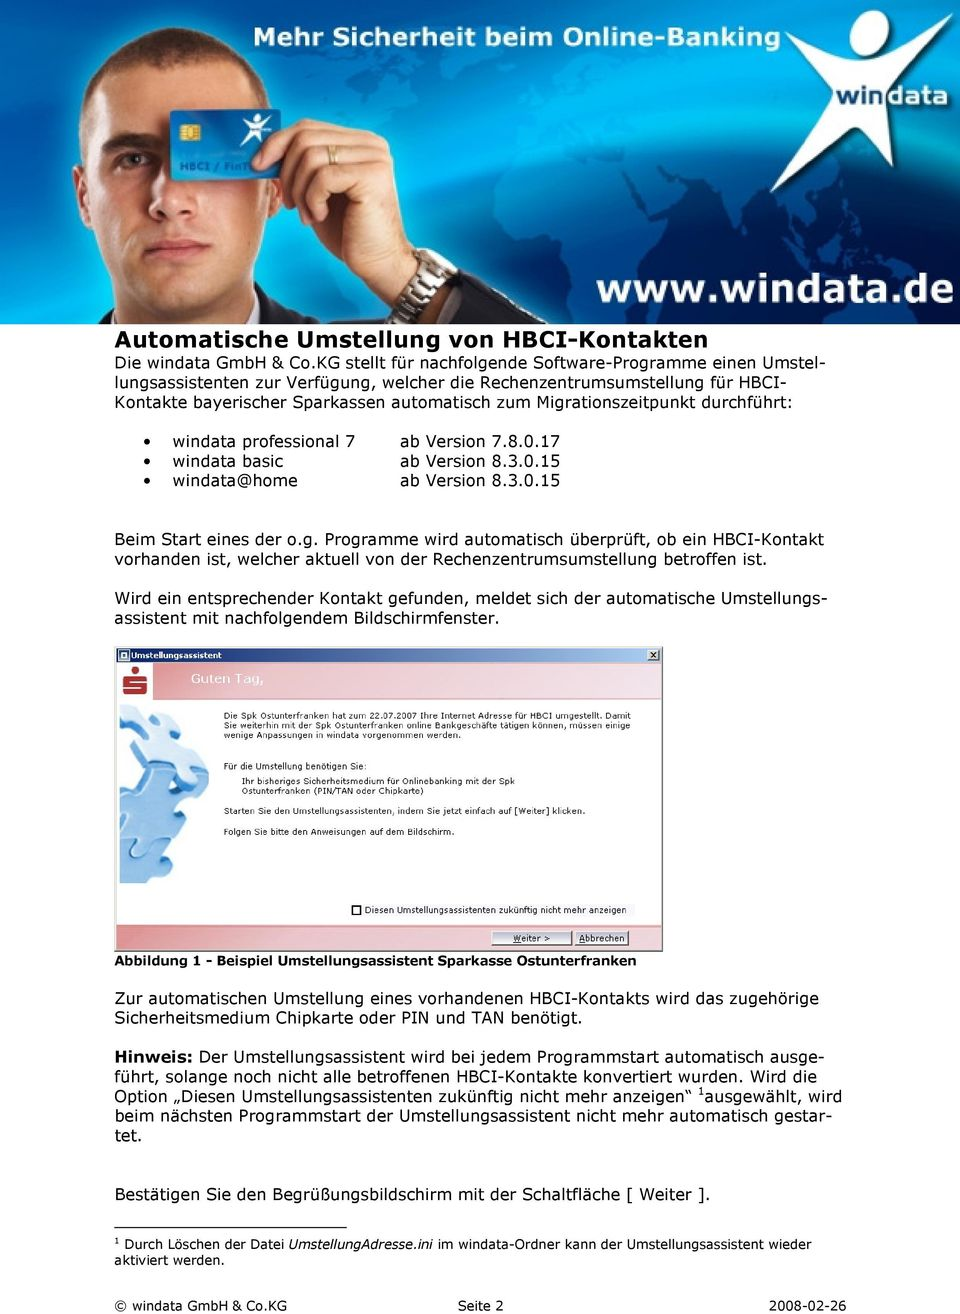 Umstellungsassistent. für. windata professional 7 windata basic - PDF